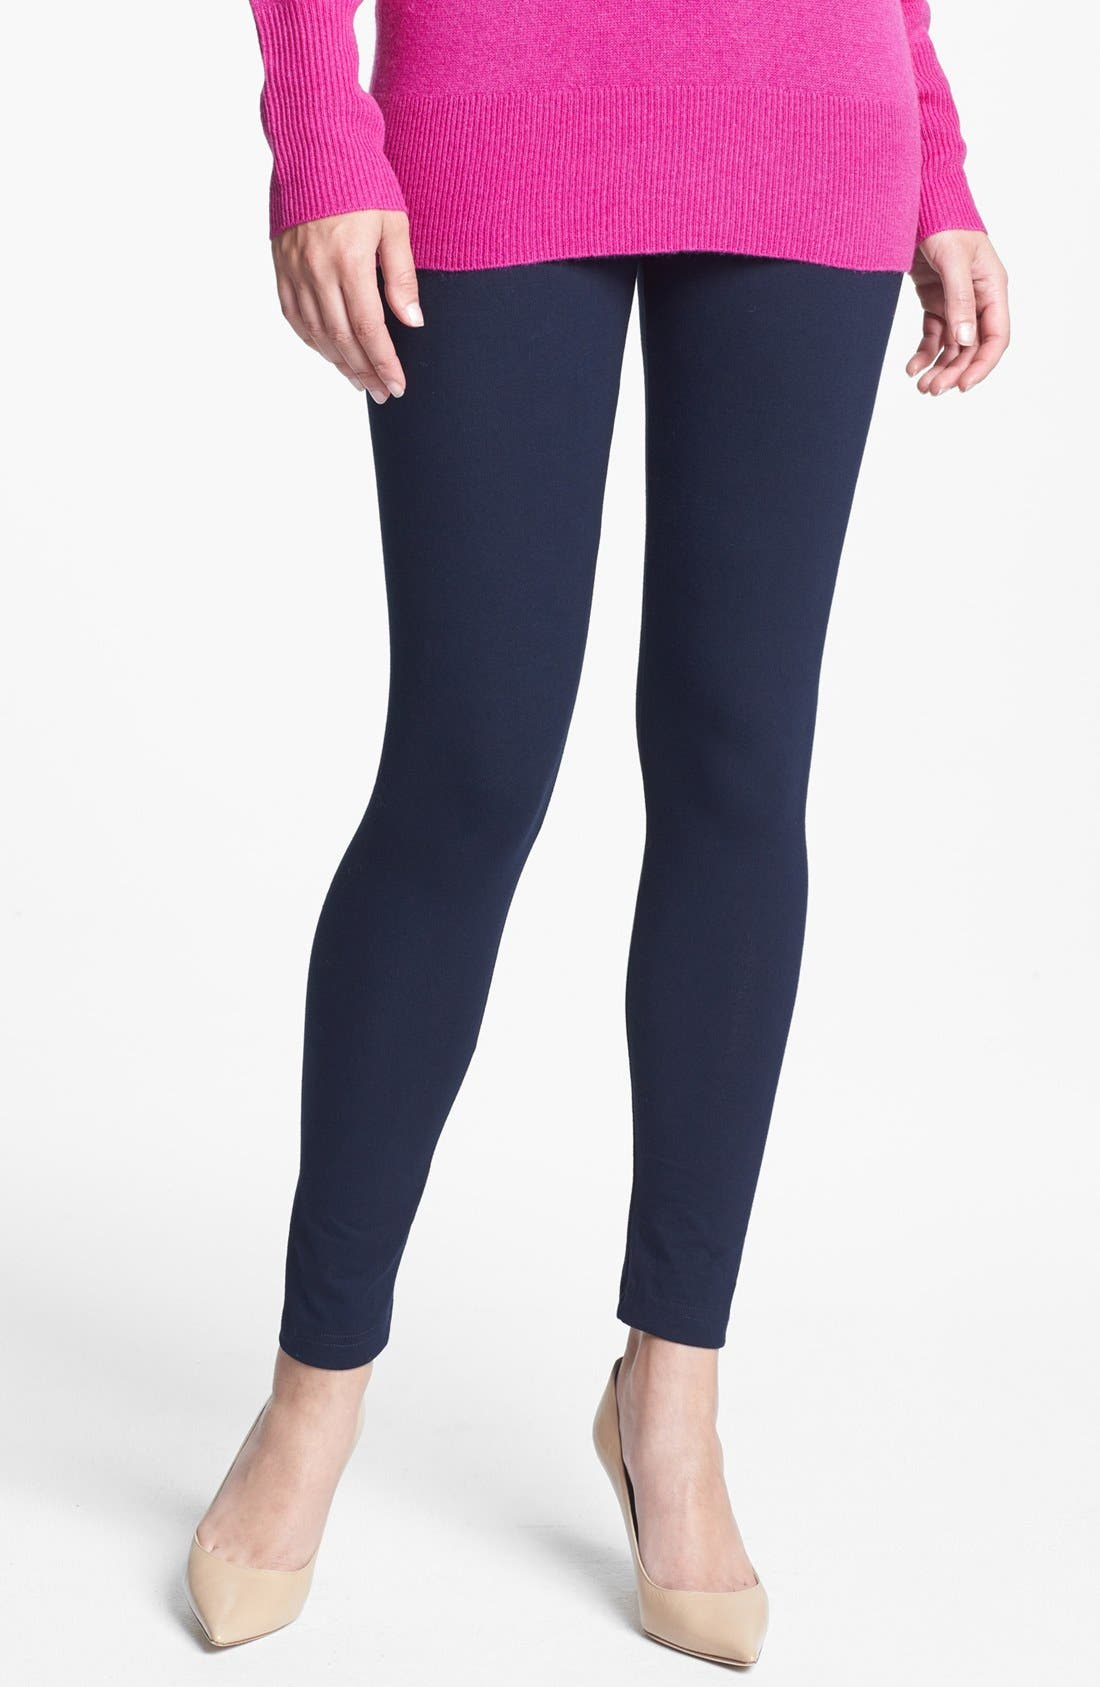 LYSSÉ Control Top High Waist Leggings